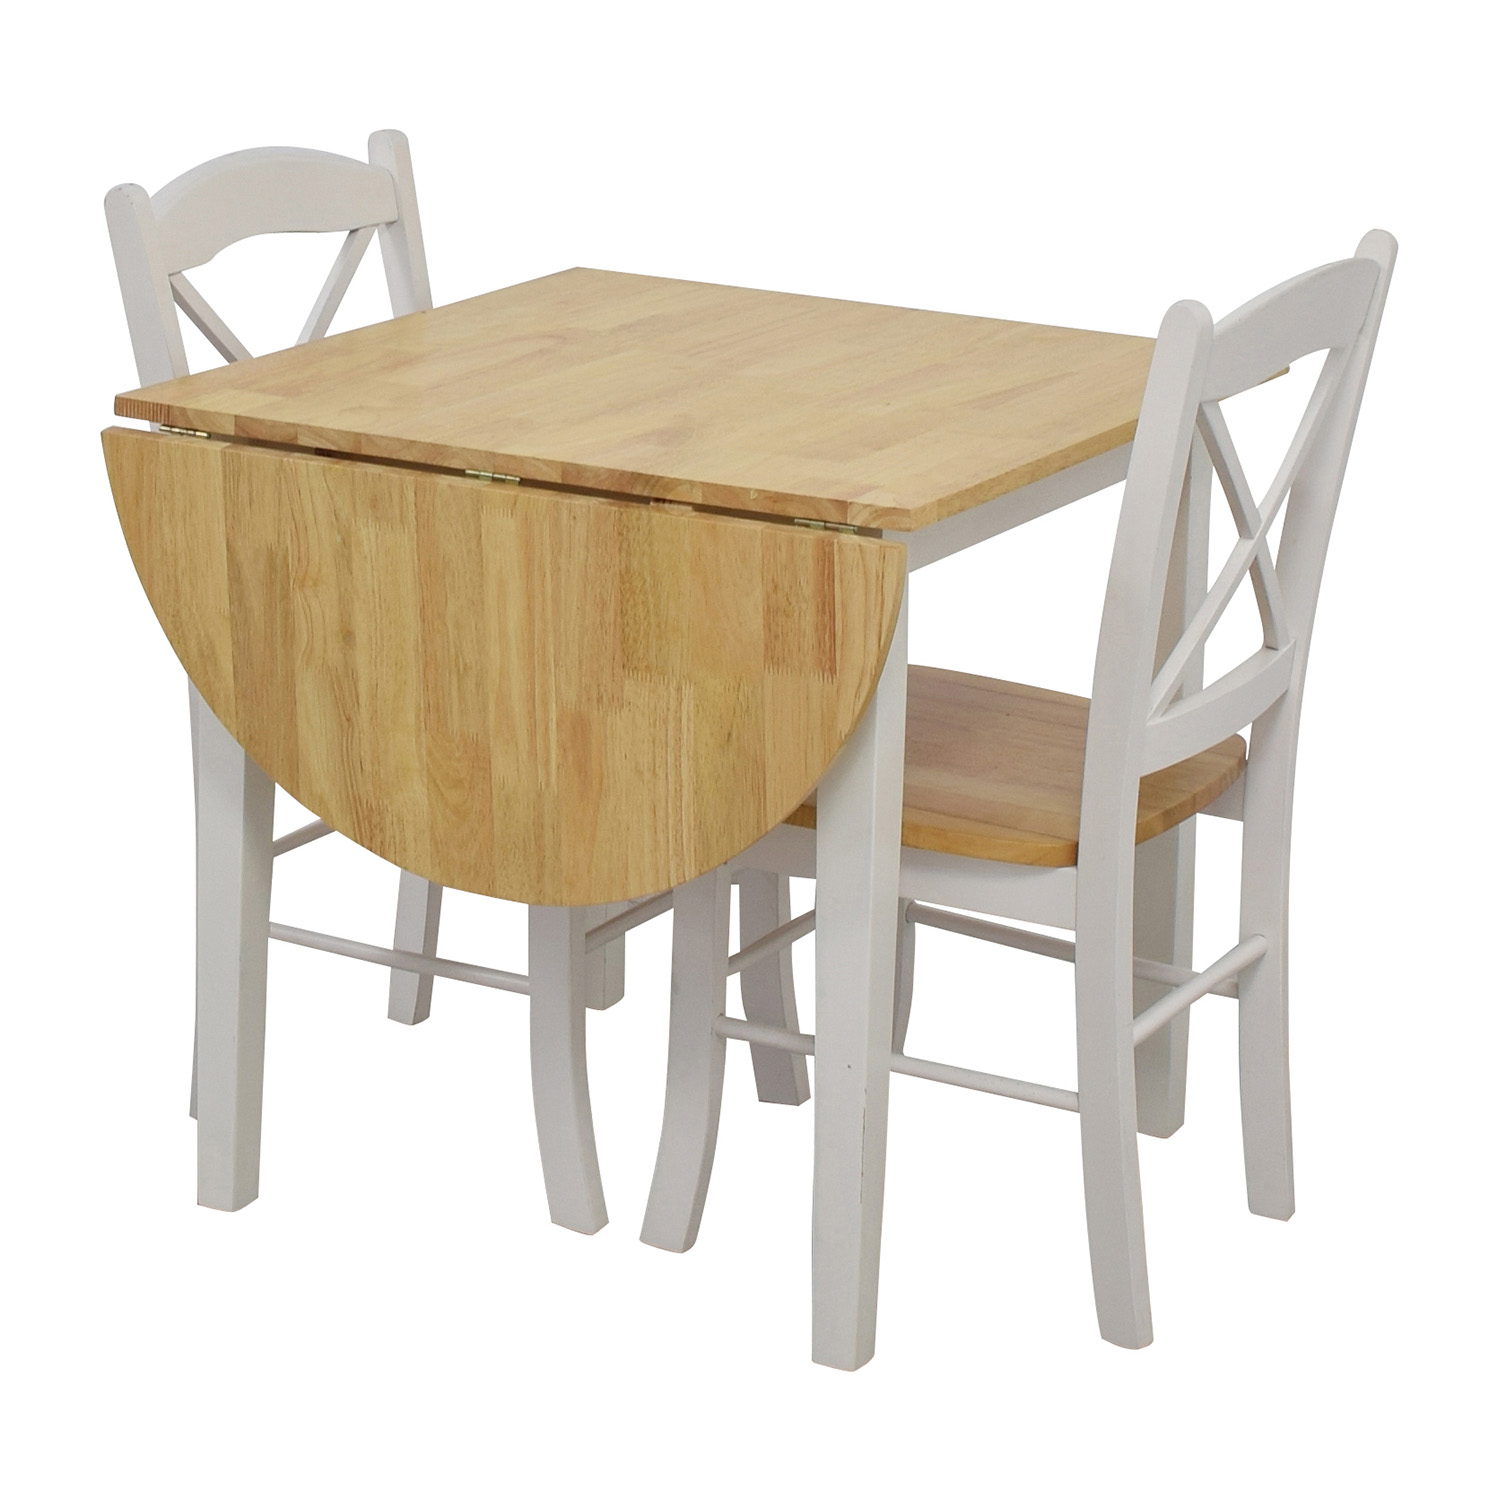 3 Piece Dining Set 48 Off Simple Living Simple Living Country Cottage 3 Piece